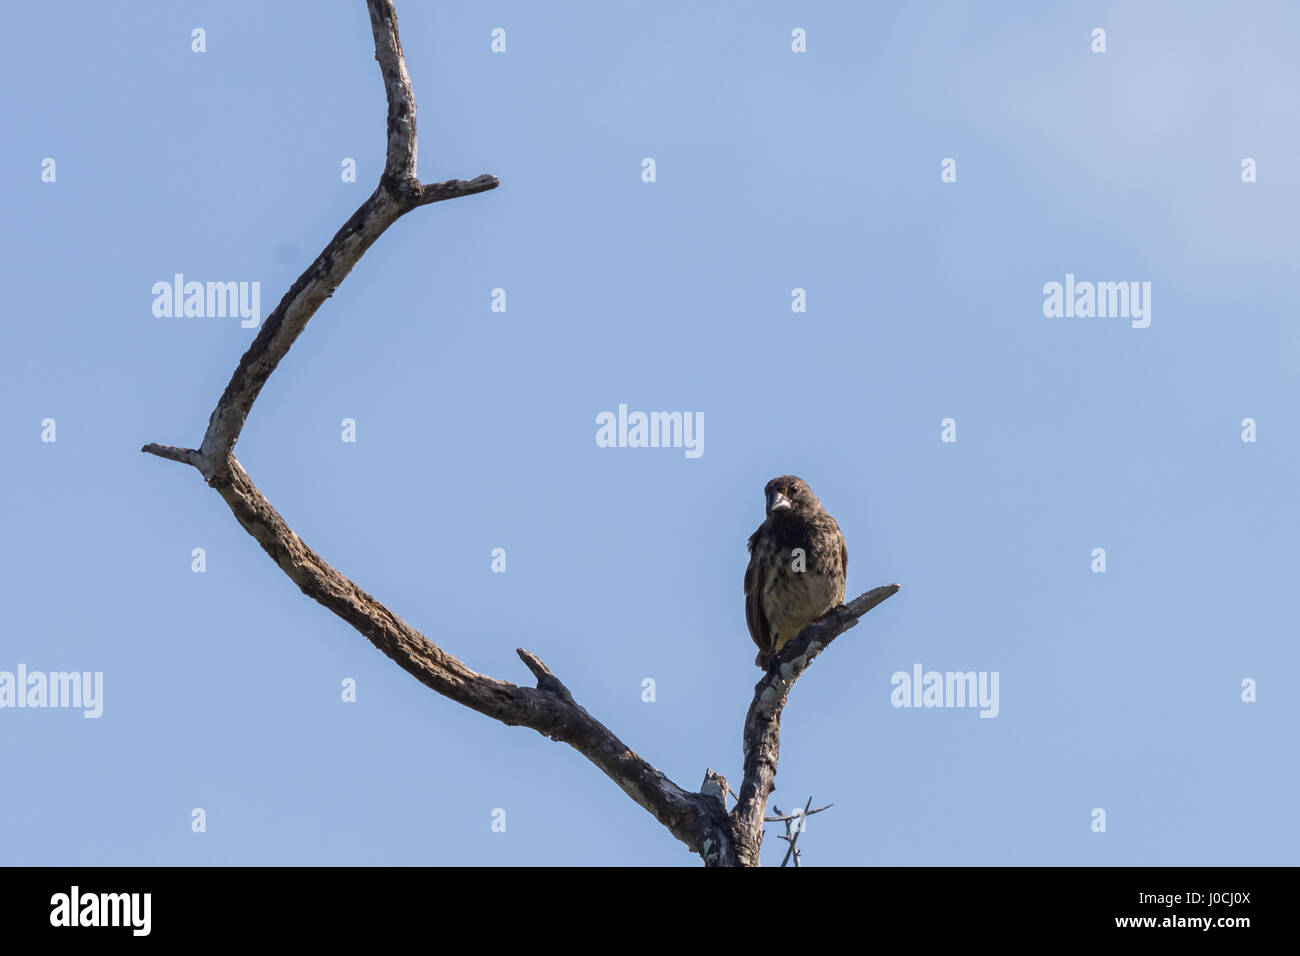 A Darwin finch perched in a tree on Isabela Island, Galapagos Islans, Ecuador. - Stock Image